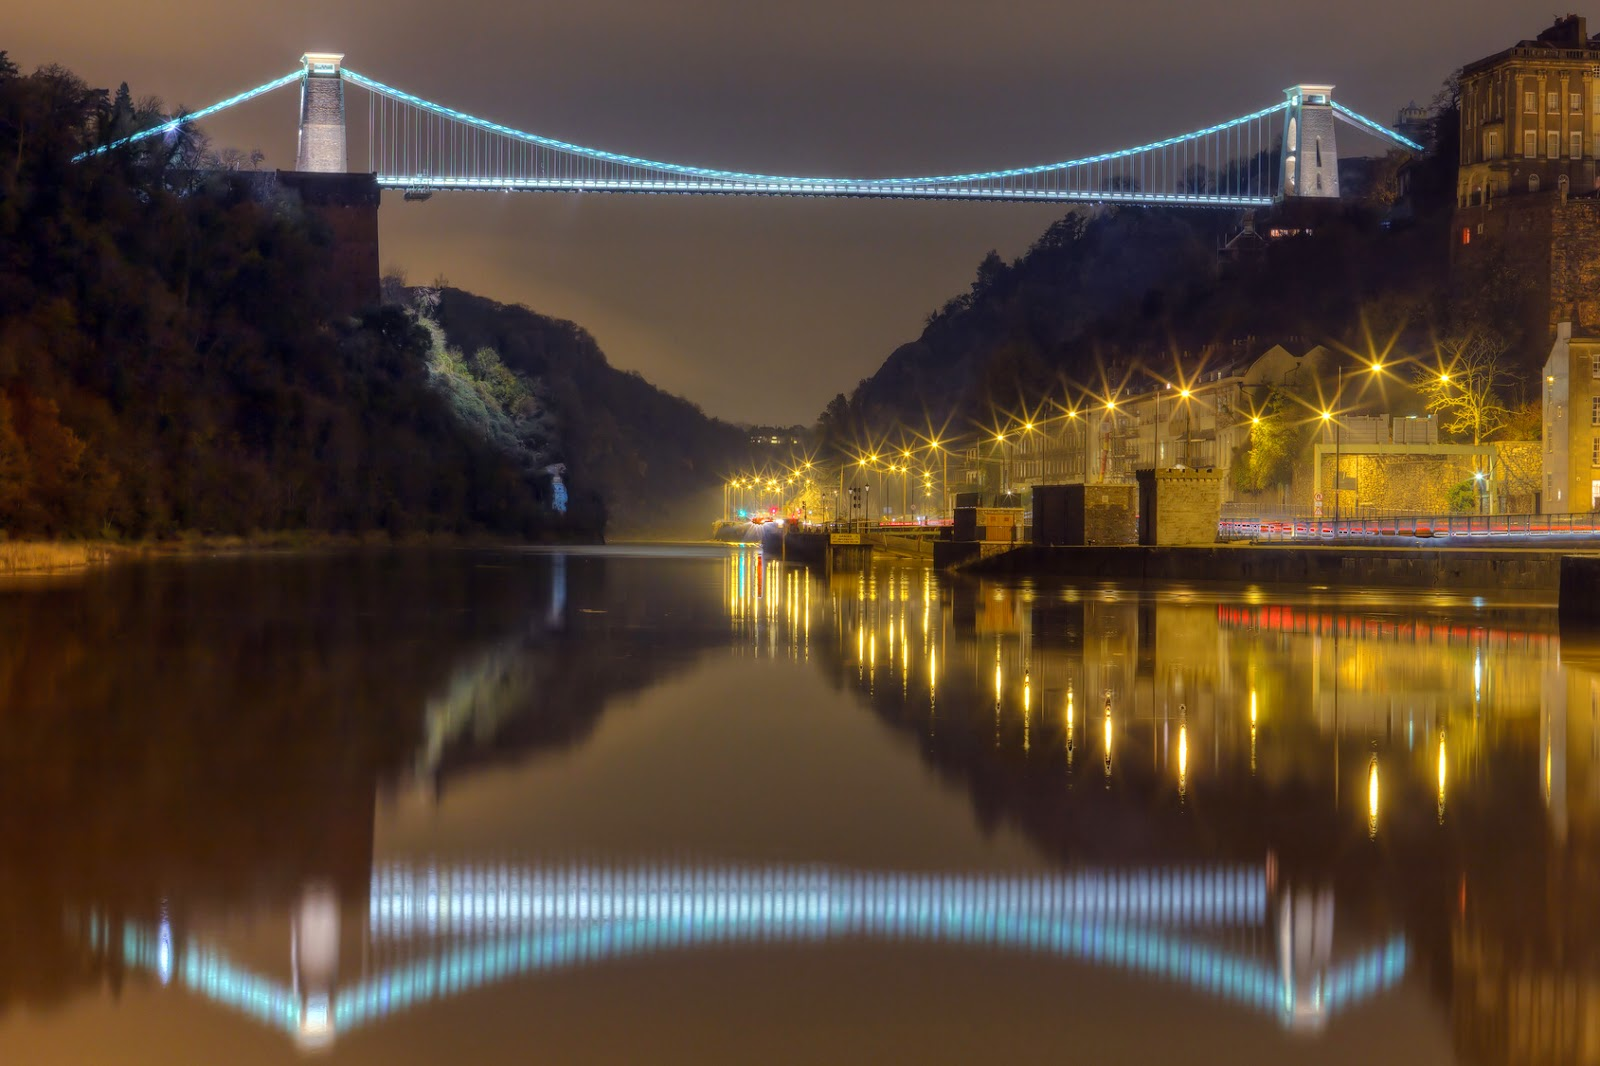 Bristol's Clifton Suspension Bridge lit up at night © antalpeter81 - Fotolia.com